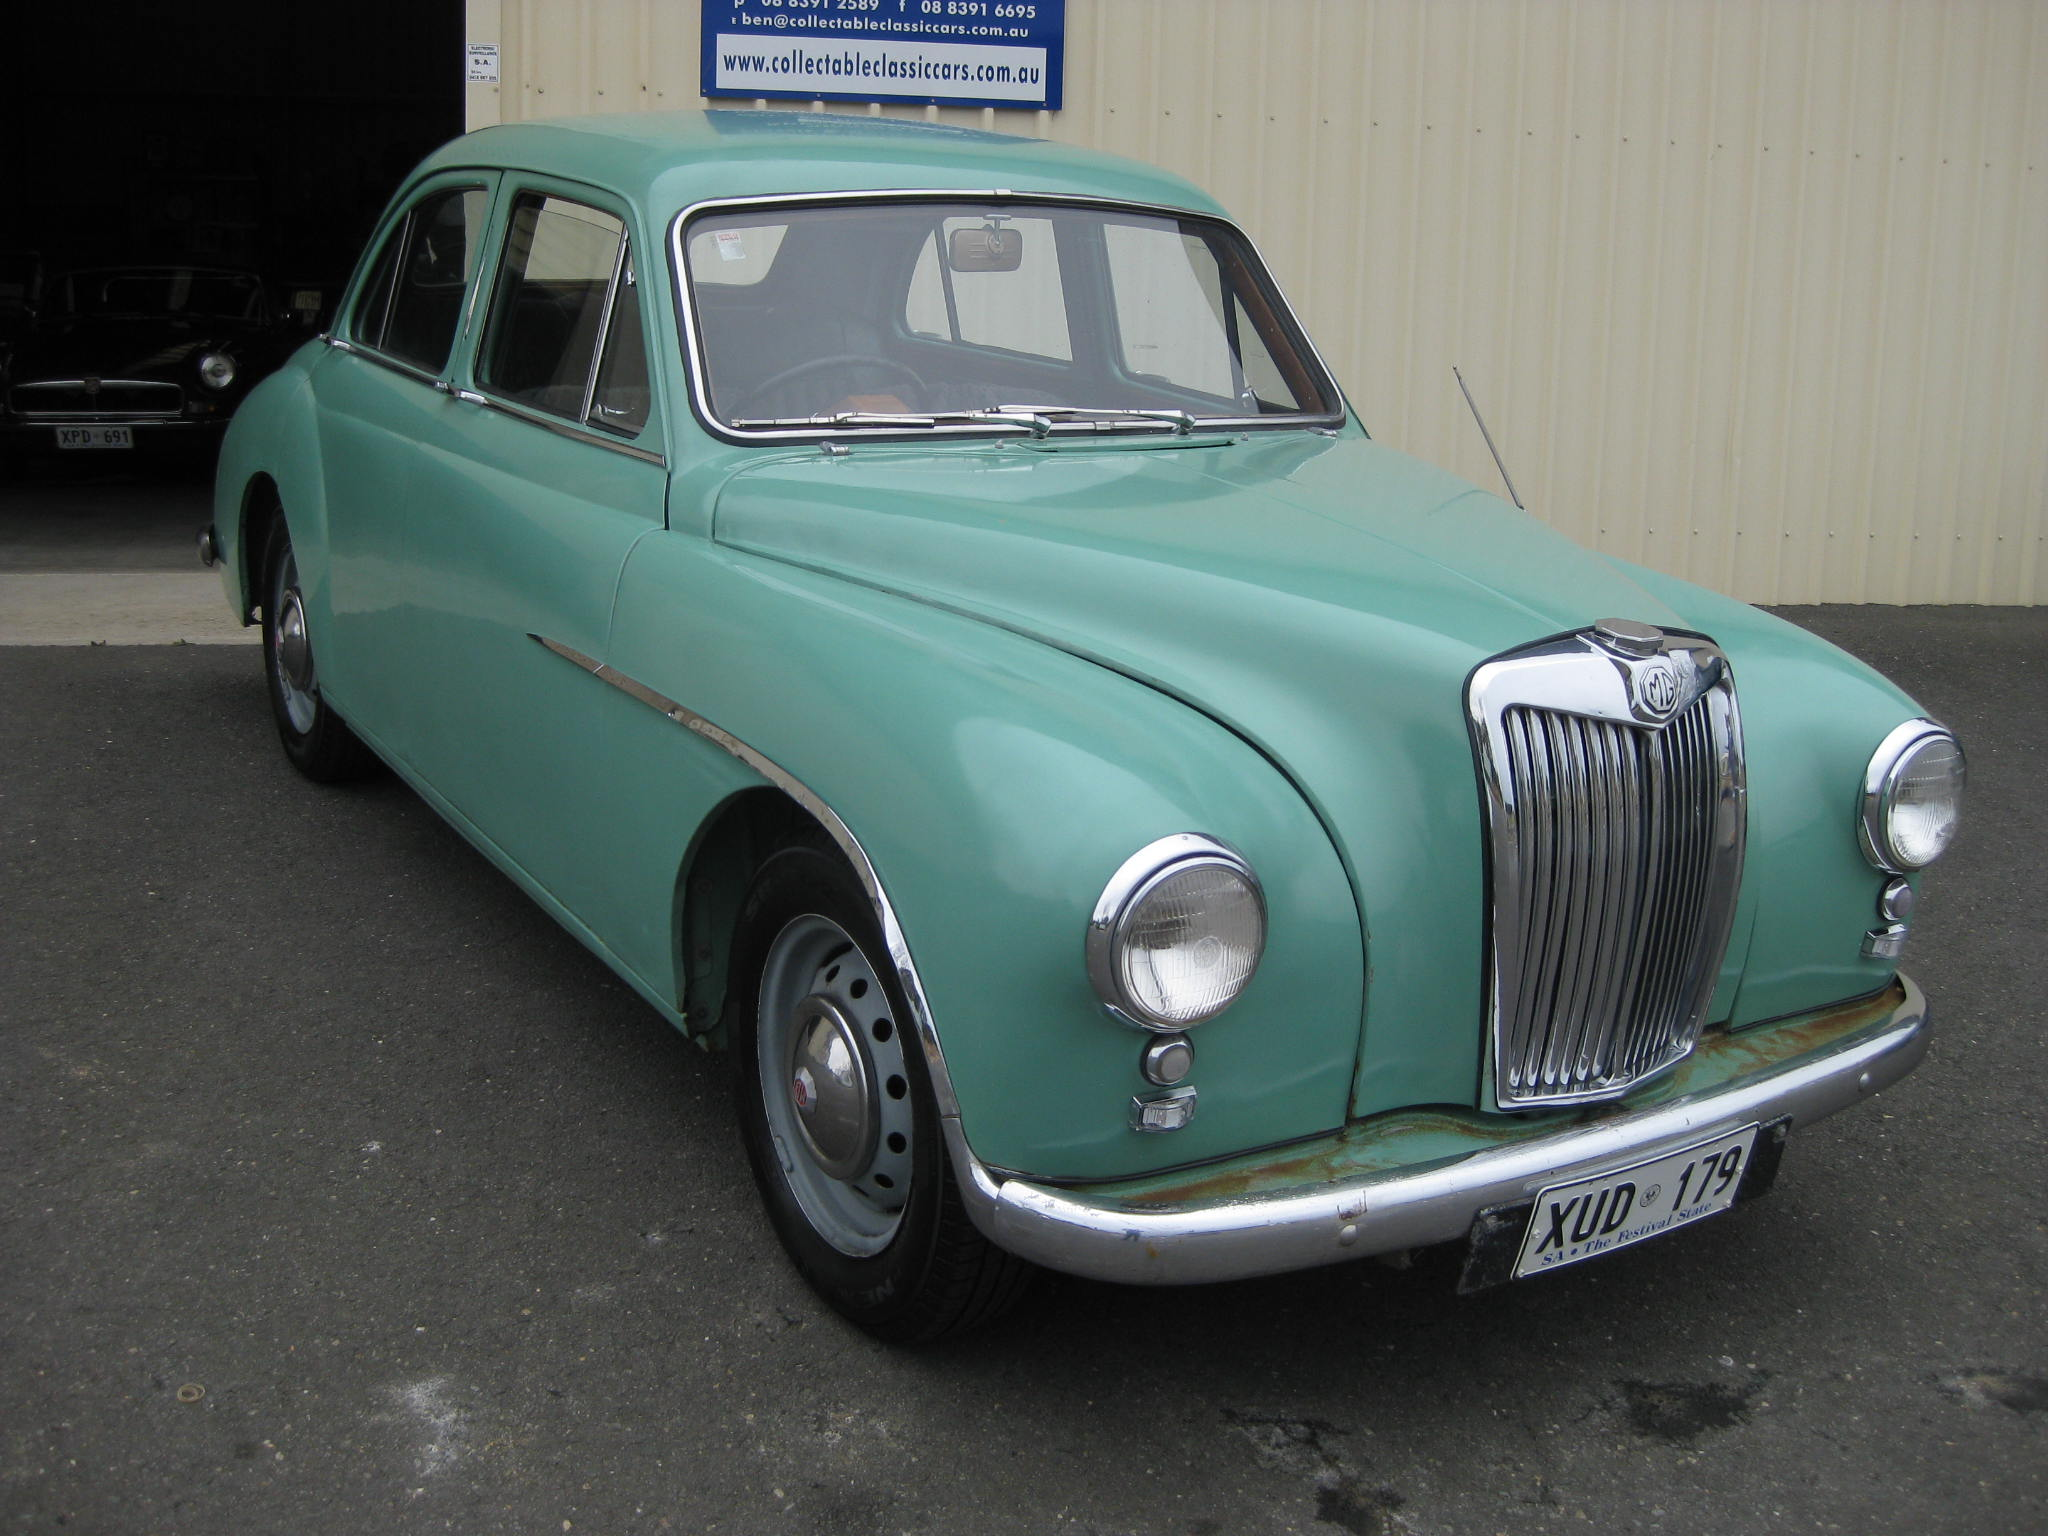 1955 MG ZA Magnette – Collectable Classic Cars